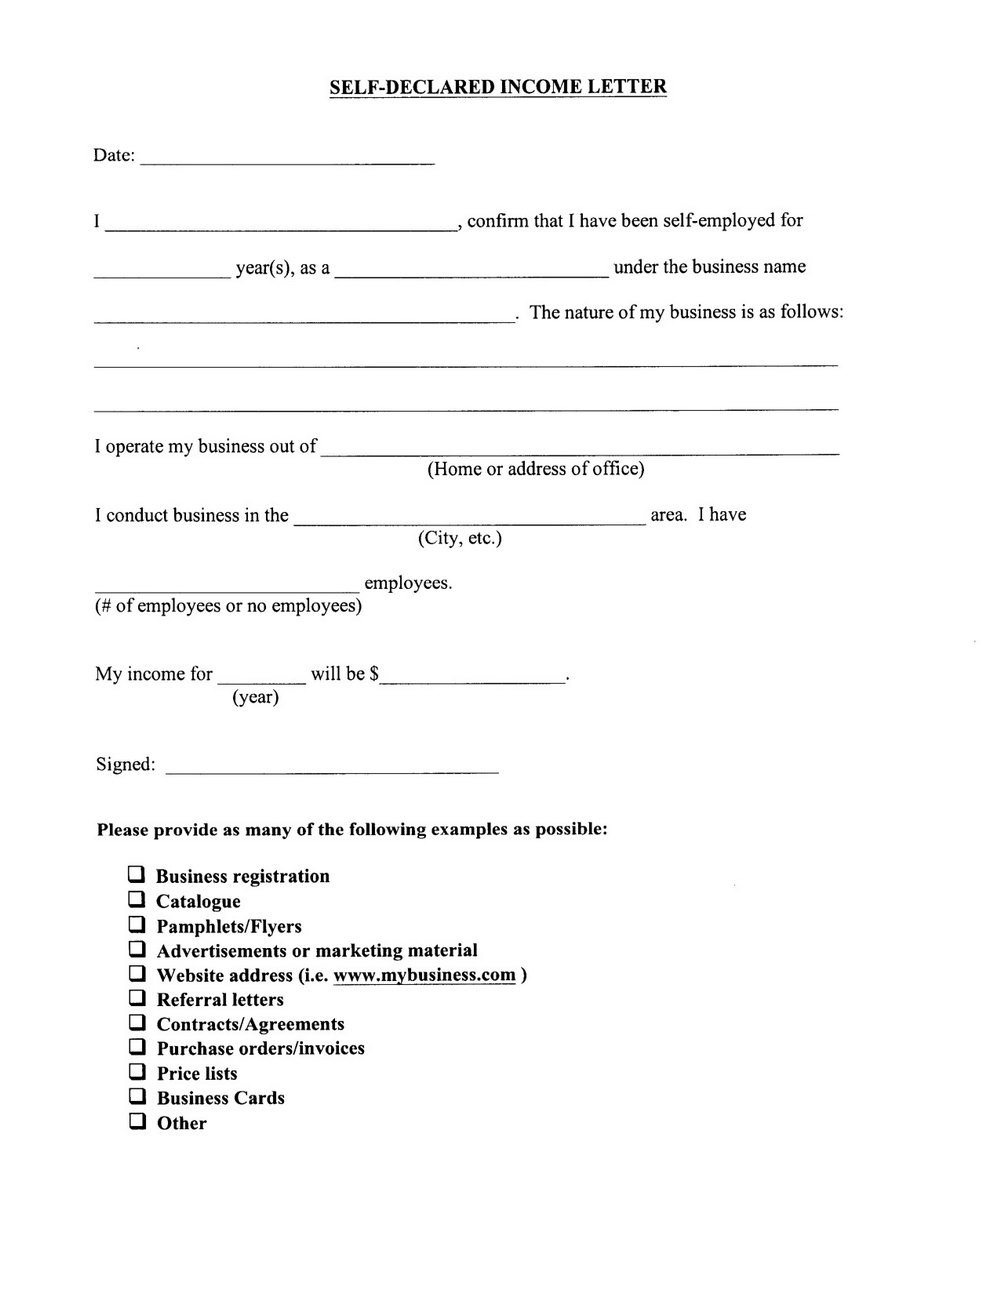 Self Employed Form For Housing Benefit